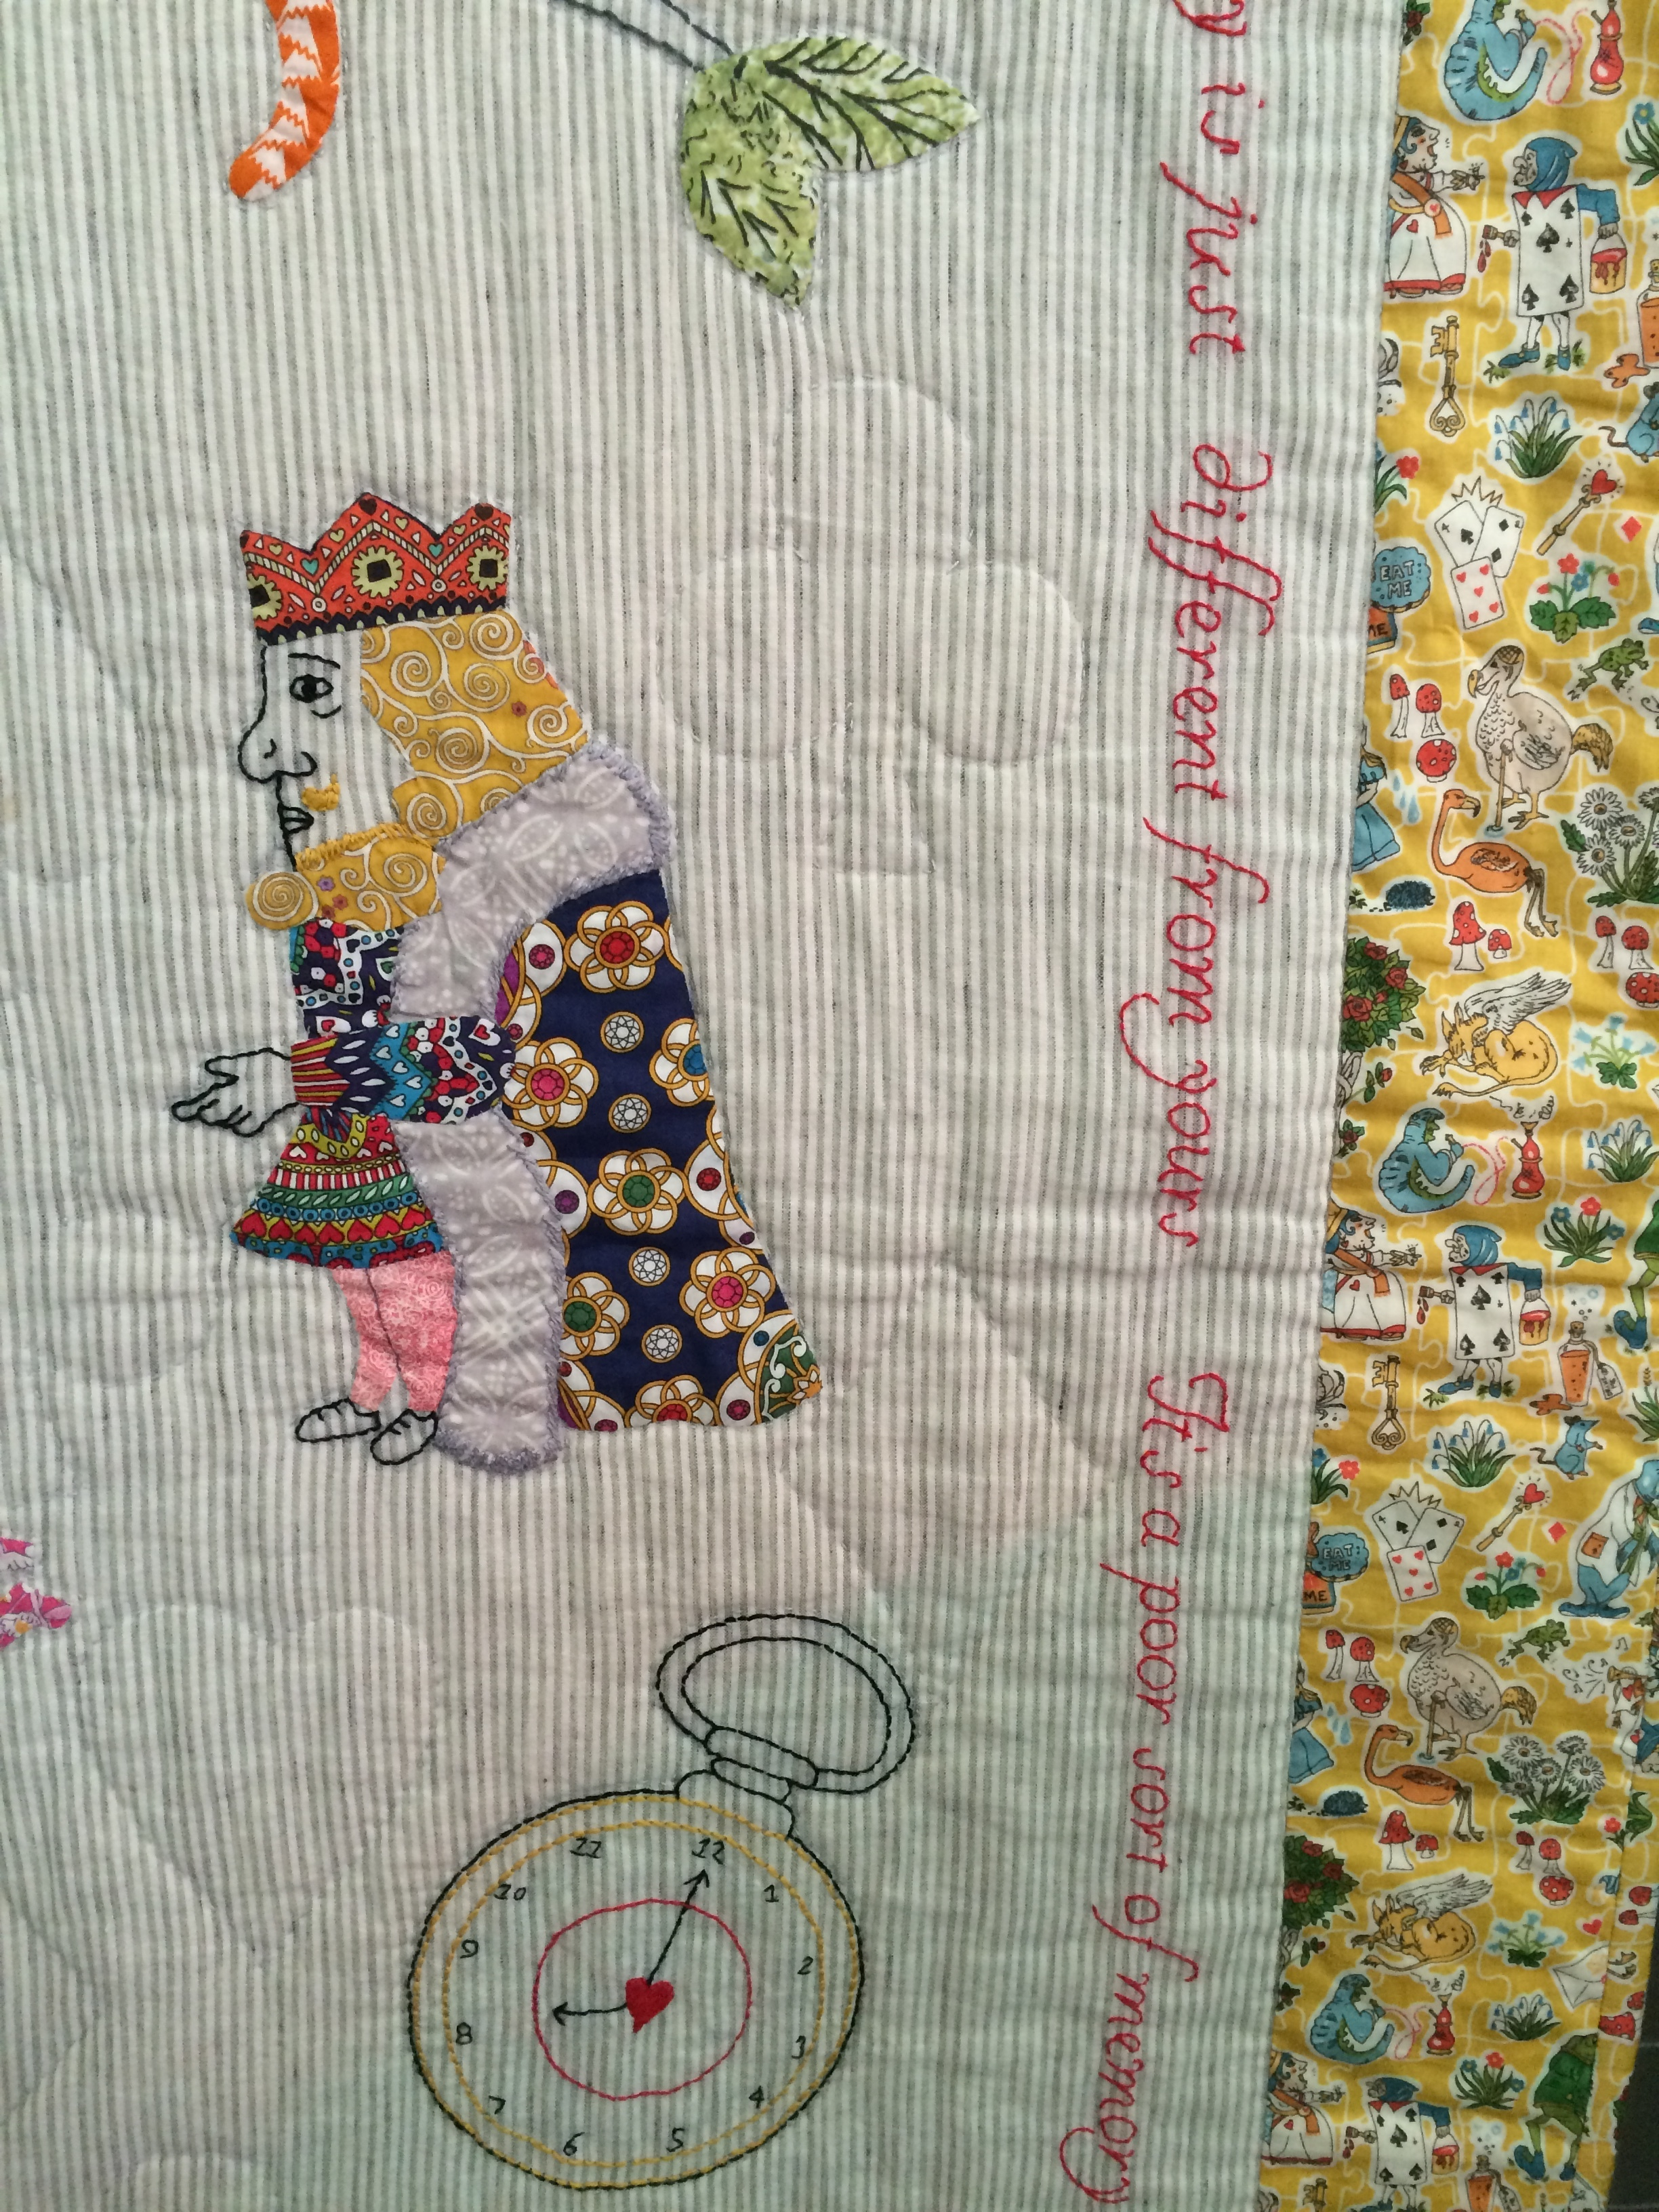 Judy's Liberty Alice quilt close up.